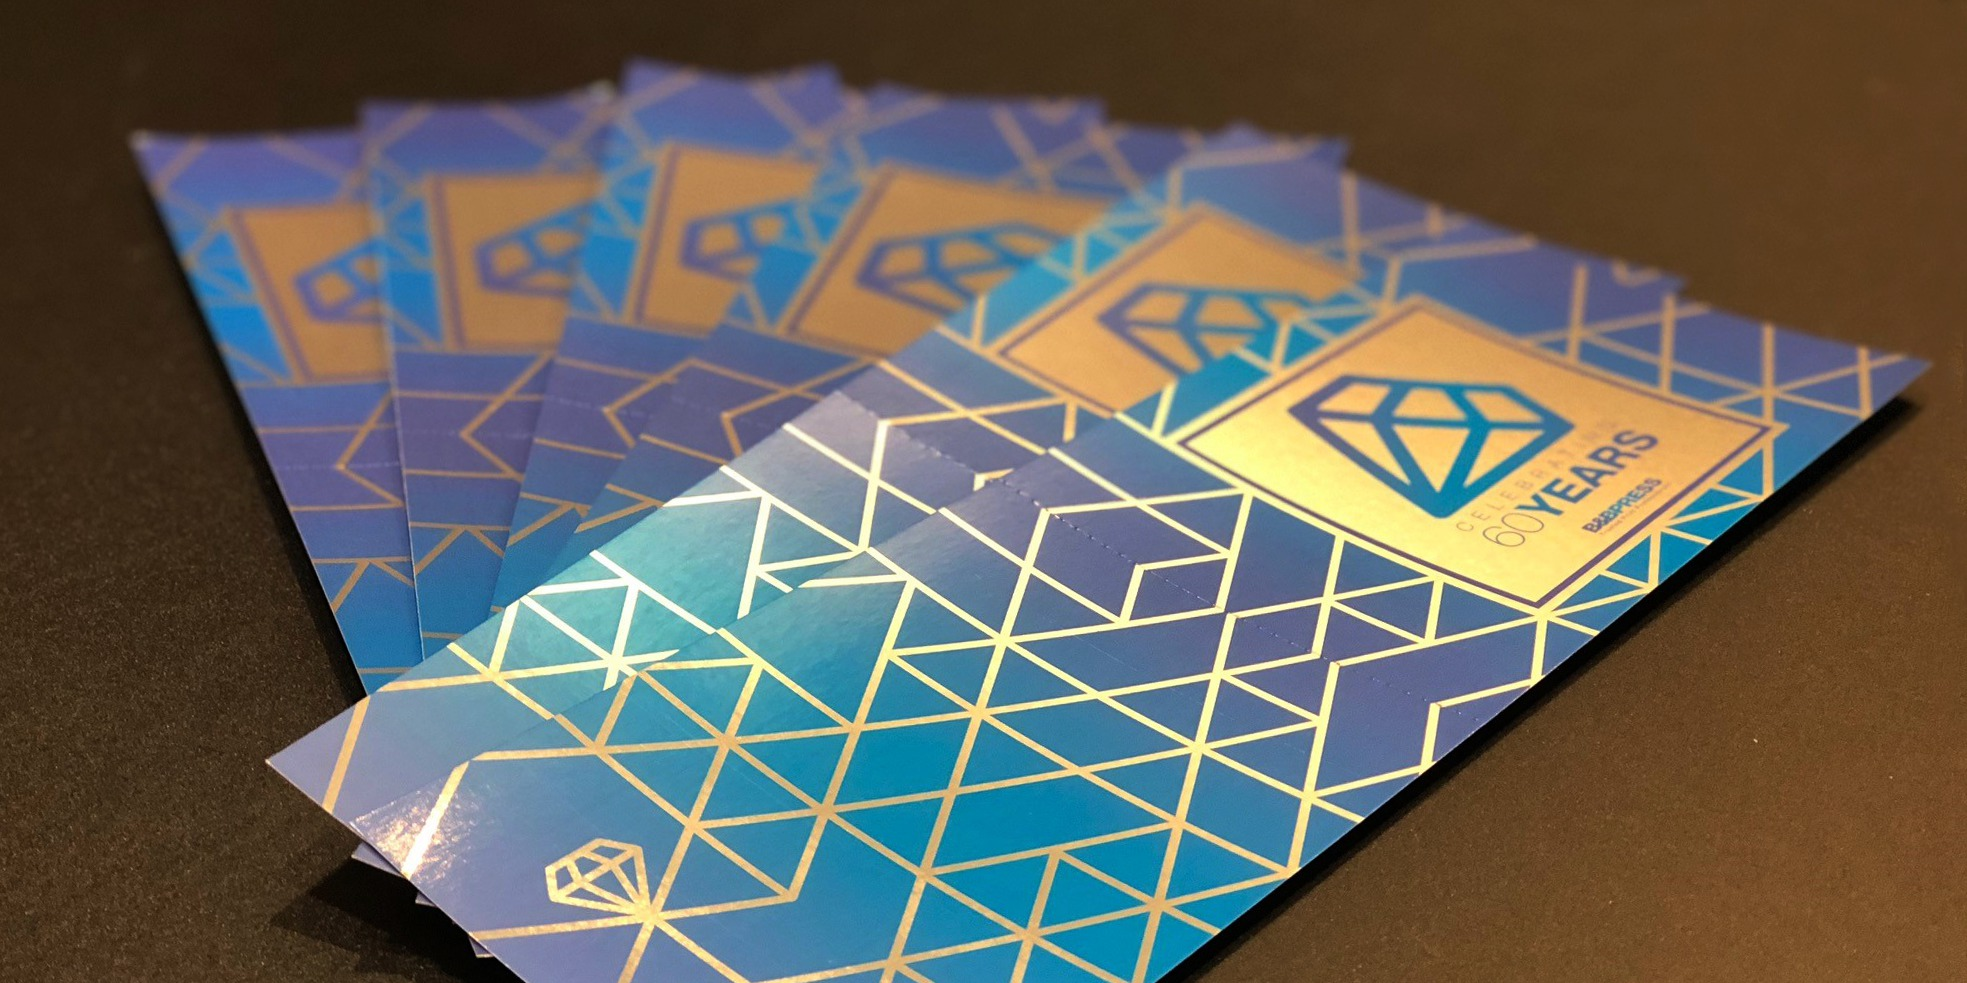 Tickets for 60th anniversary with the silver foil effect